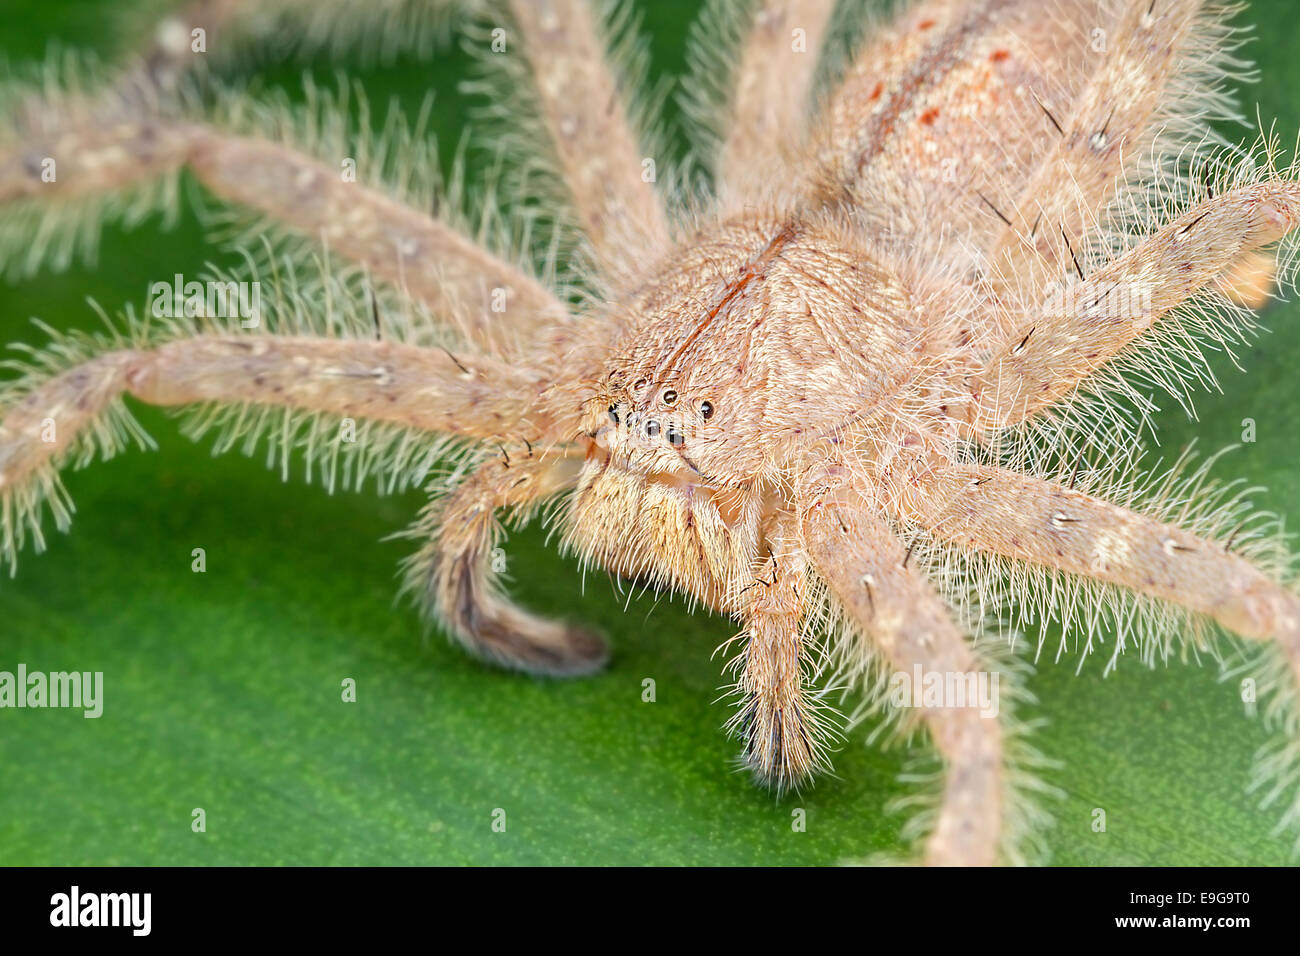 Huntsman spider (Heteropoda davidbowie) on a shrub in tropical rainforest of Singapore - Stock Image